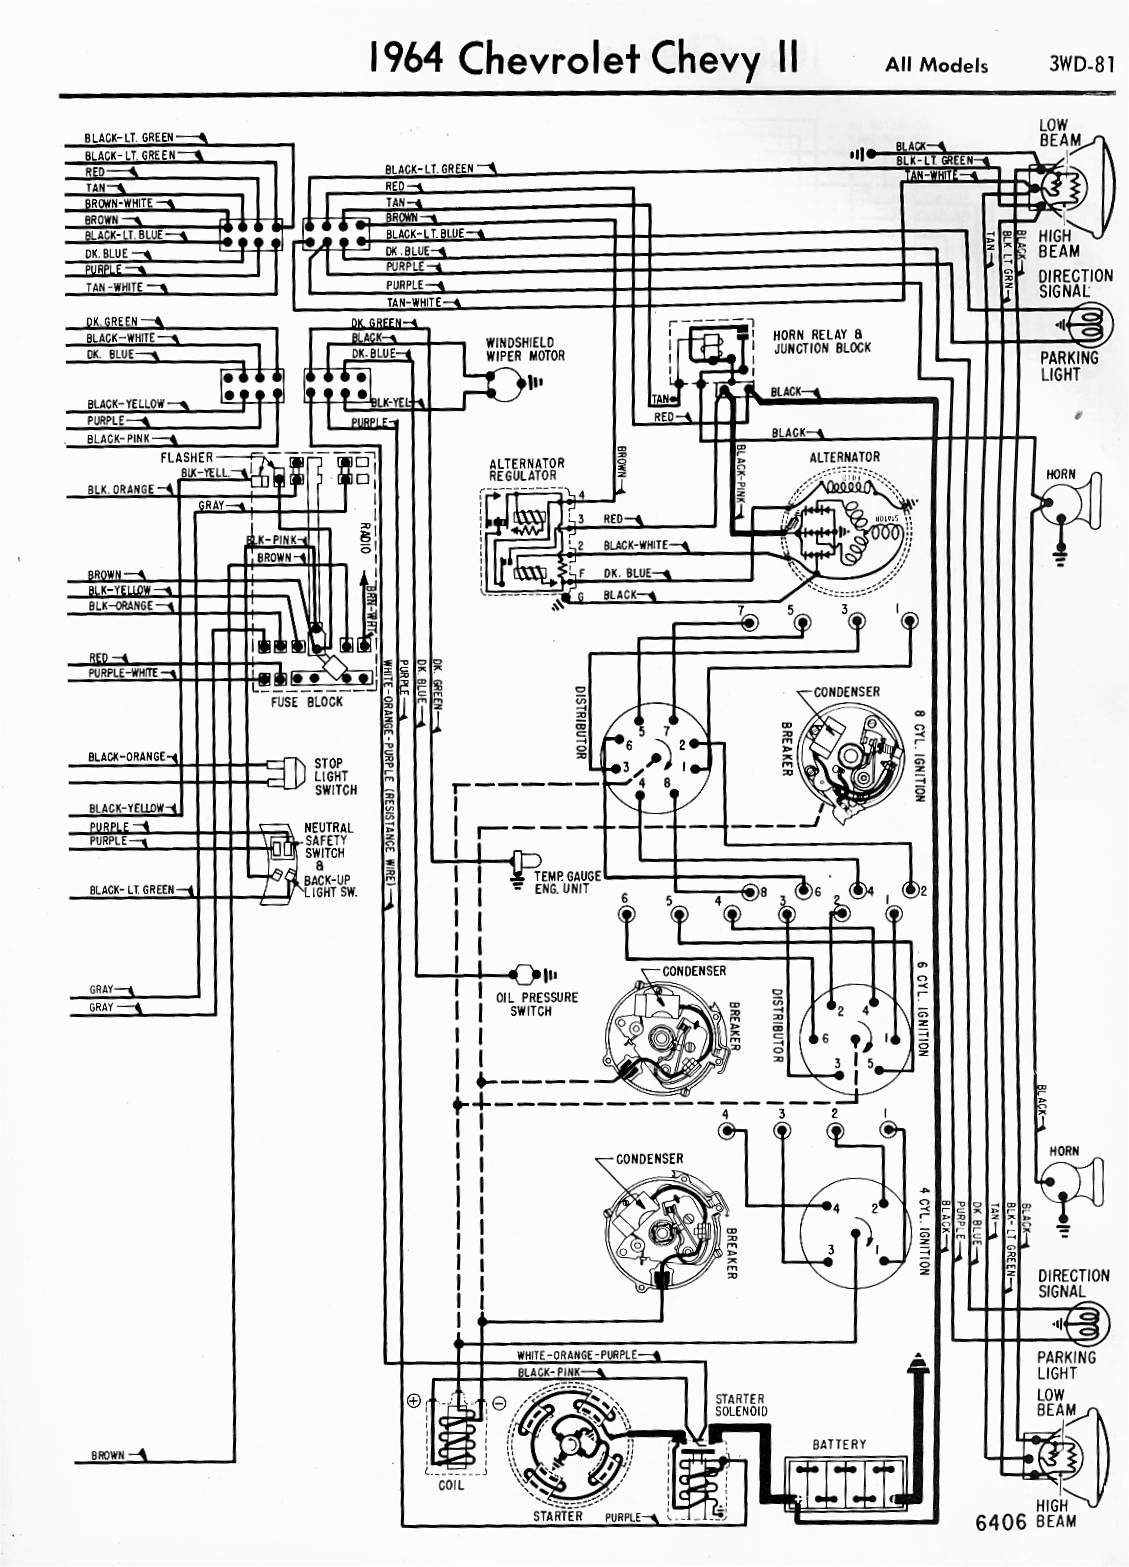 DIAGRAM] 1967 Chevy Nova Dash Wiring Diagram FULL Version HD Quality Wiring  Diagram - LUMI-DIAGRAM.RADD.FR